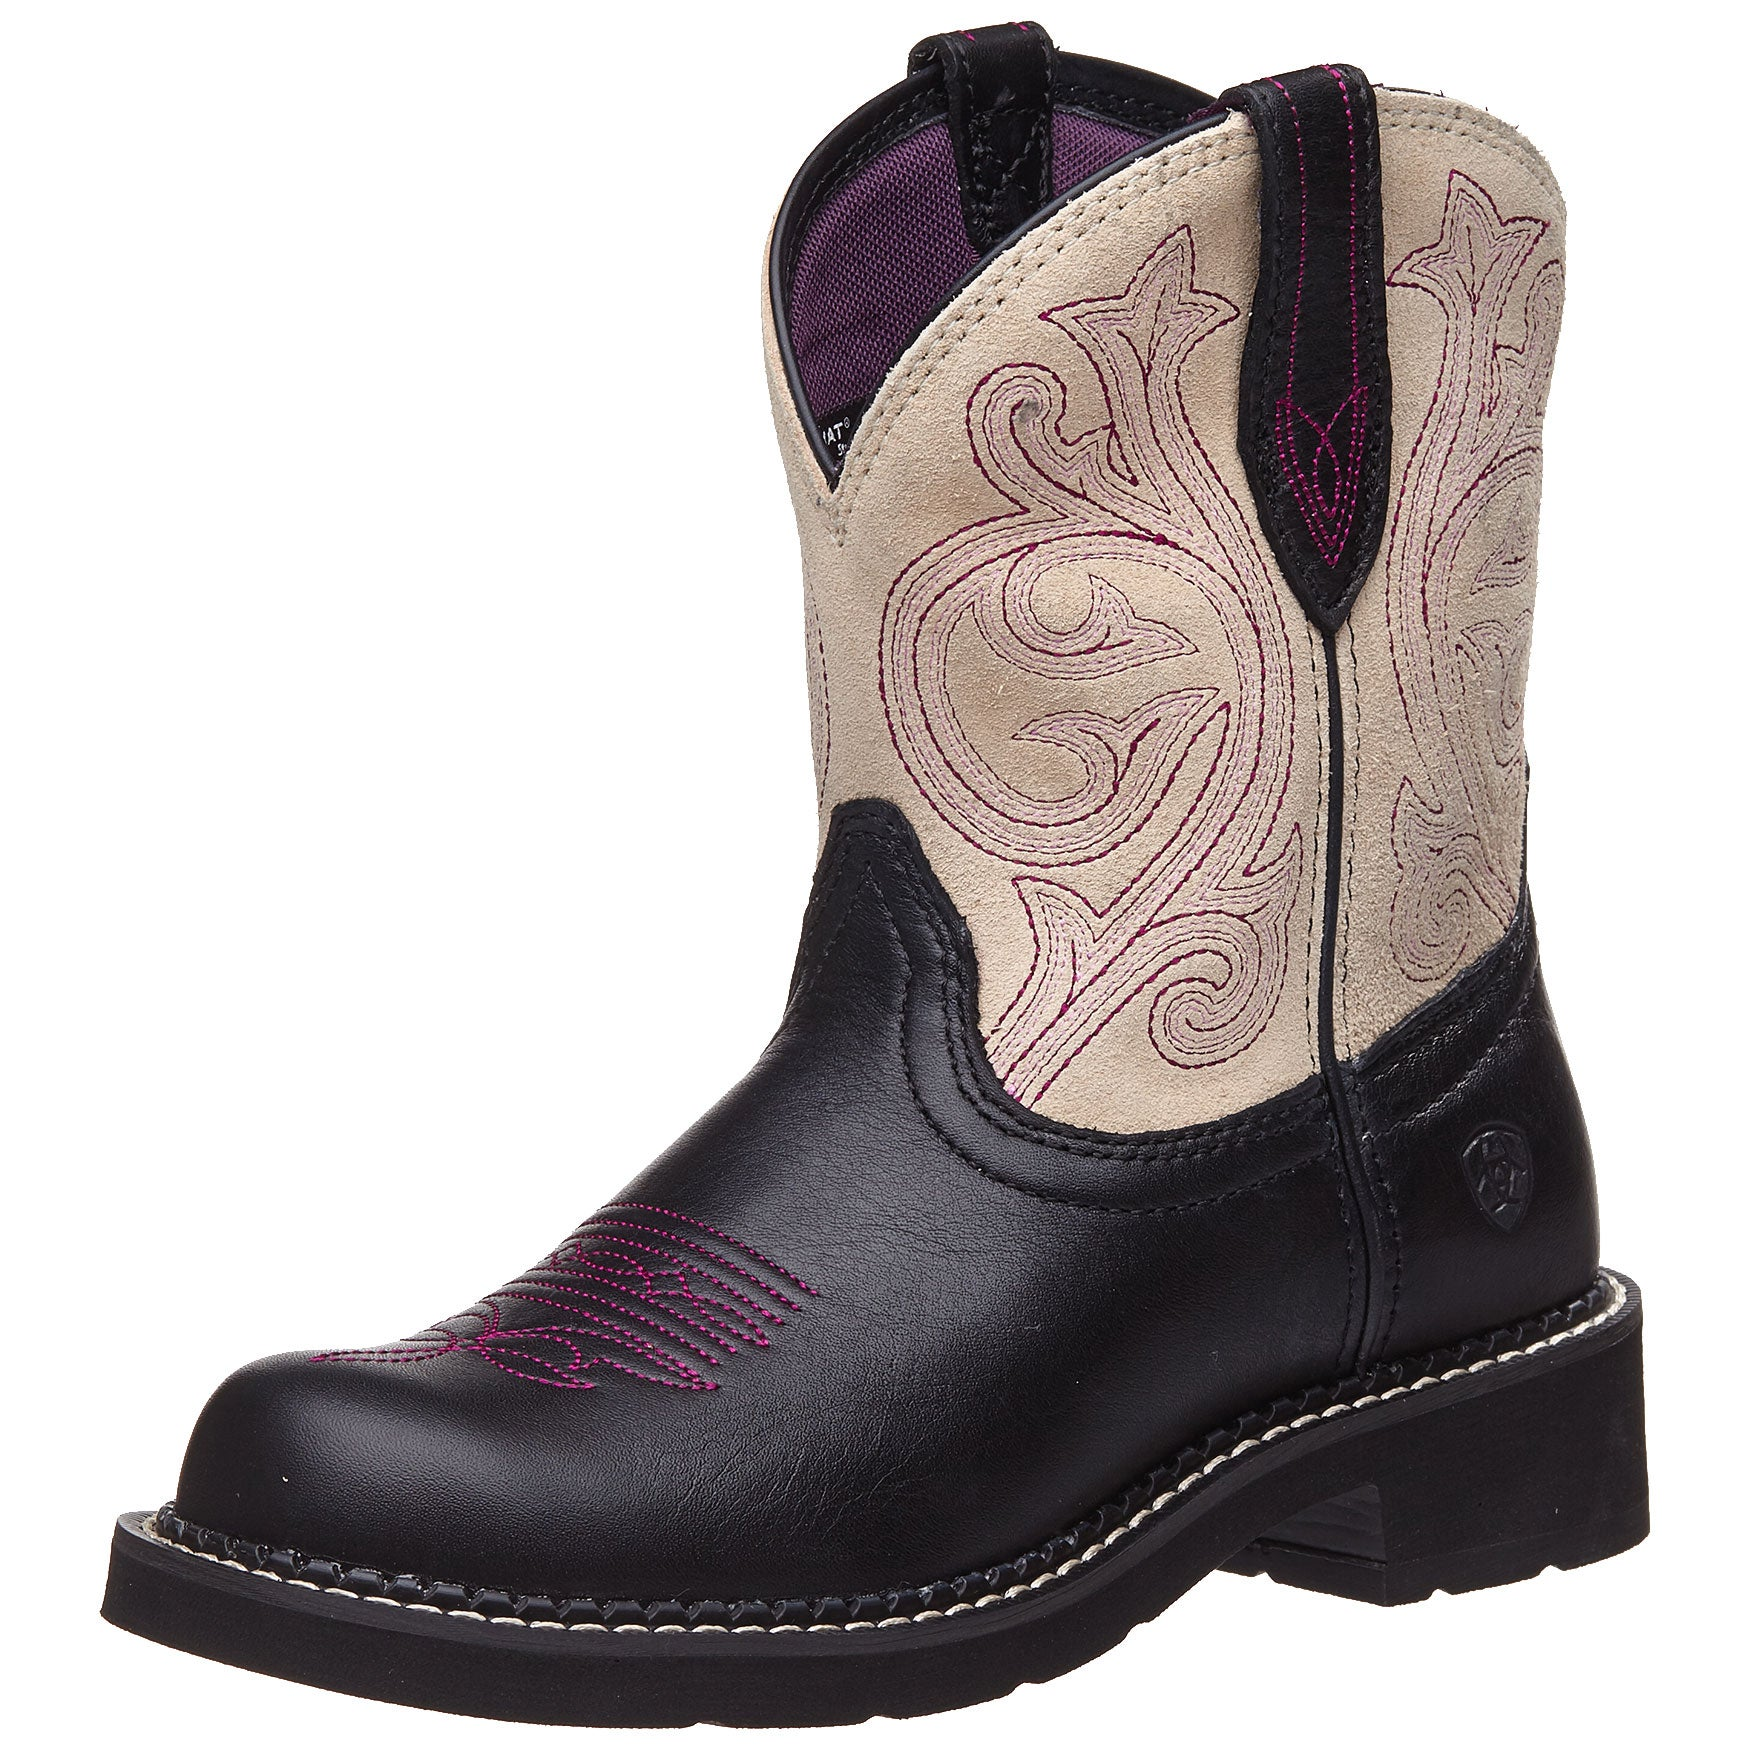 a6a1048069c Ariat Fatbaby Heritage Black Women's Cowboy Boots - Riding Warehouse